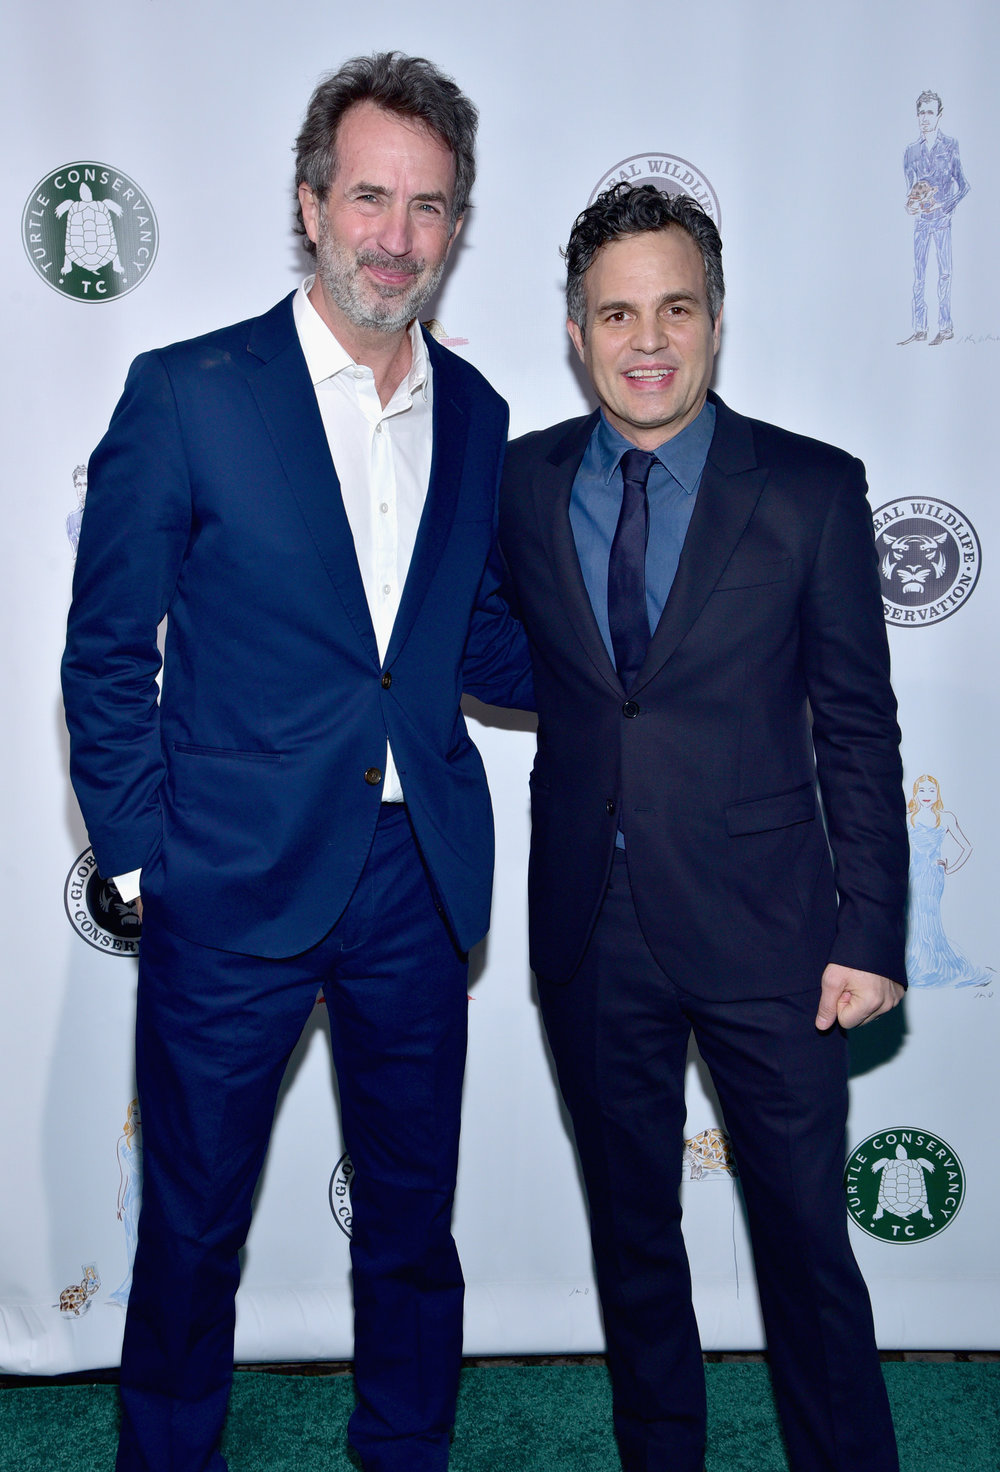 Eric Goode and Mark Ruffalo